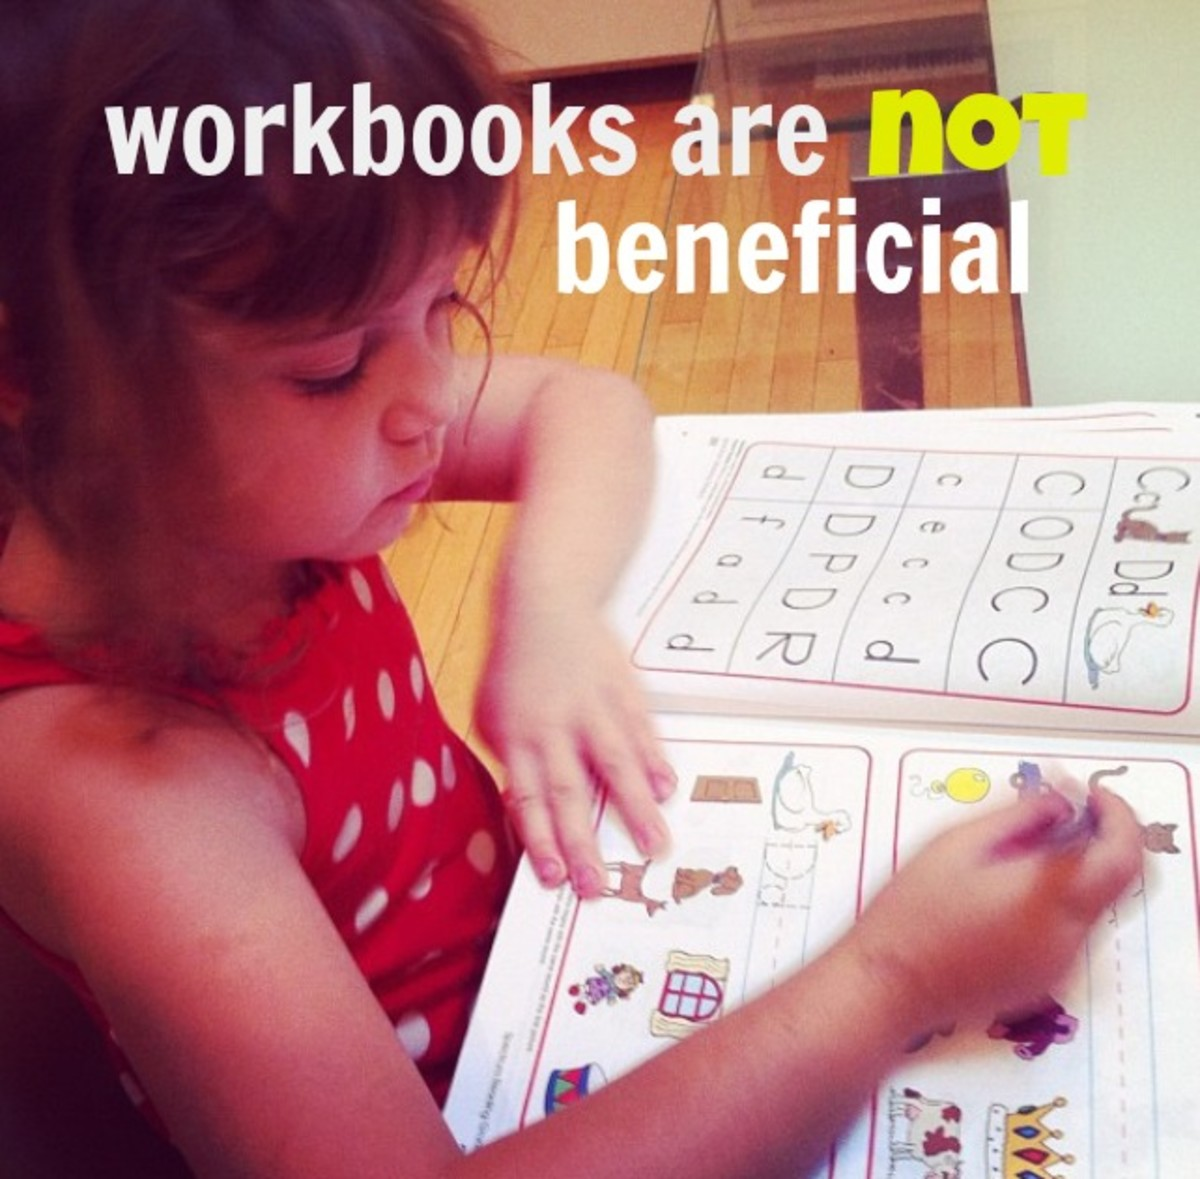 According to the latest brain research, children benefit far more from exploring their surroundings than sitting down and writing in workbooks.